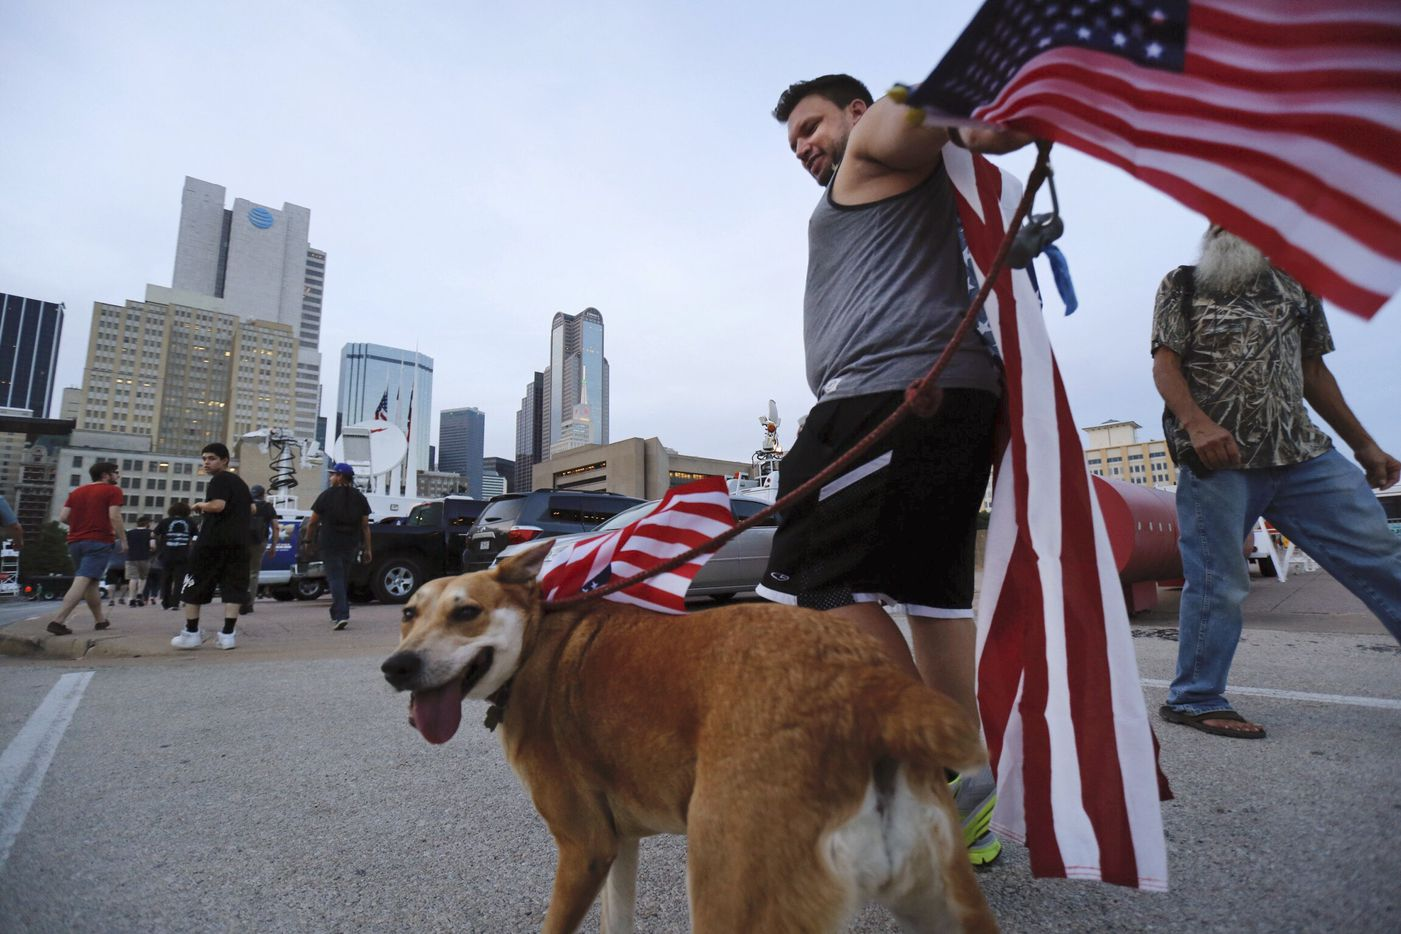 Clad in U.S. flags, Jason Hone of Oak Cliff  arrives to the March Against White Supremacy rally with his dog Gonzo.